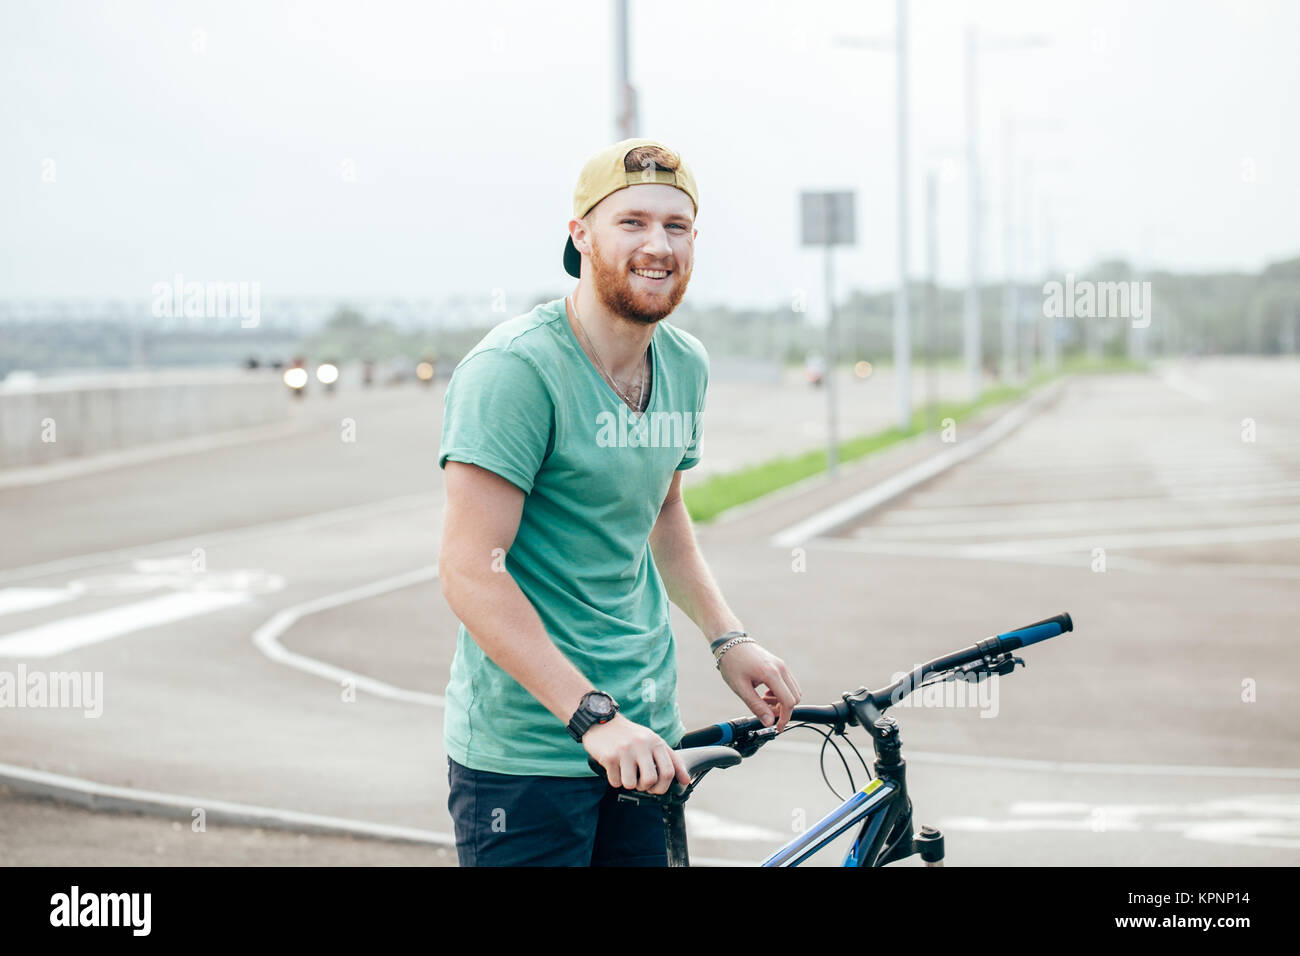 Man riding a bicycle on a road - Stock Image